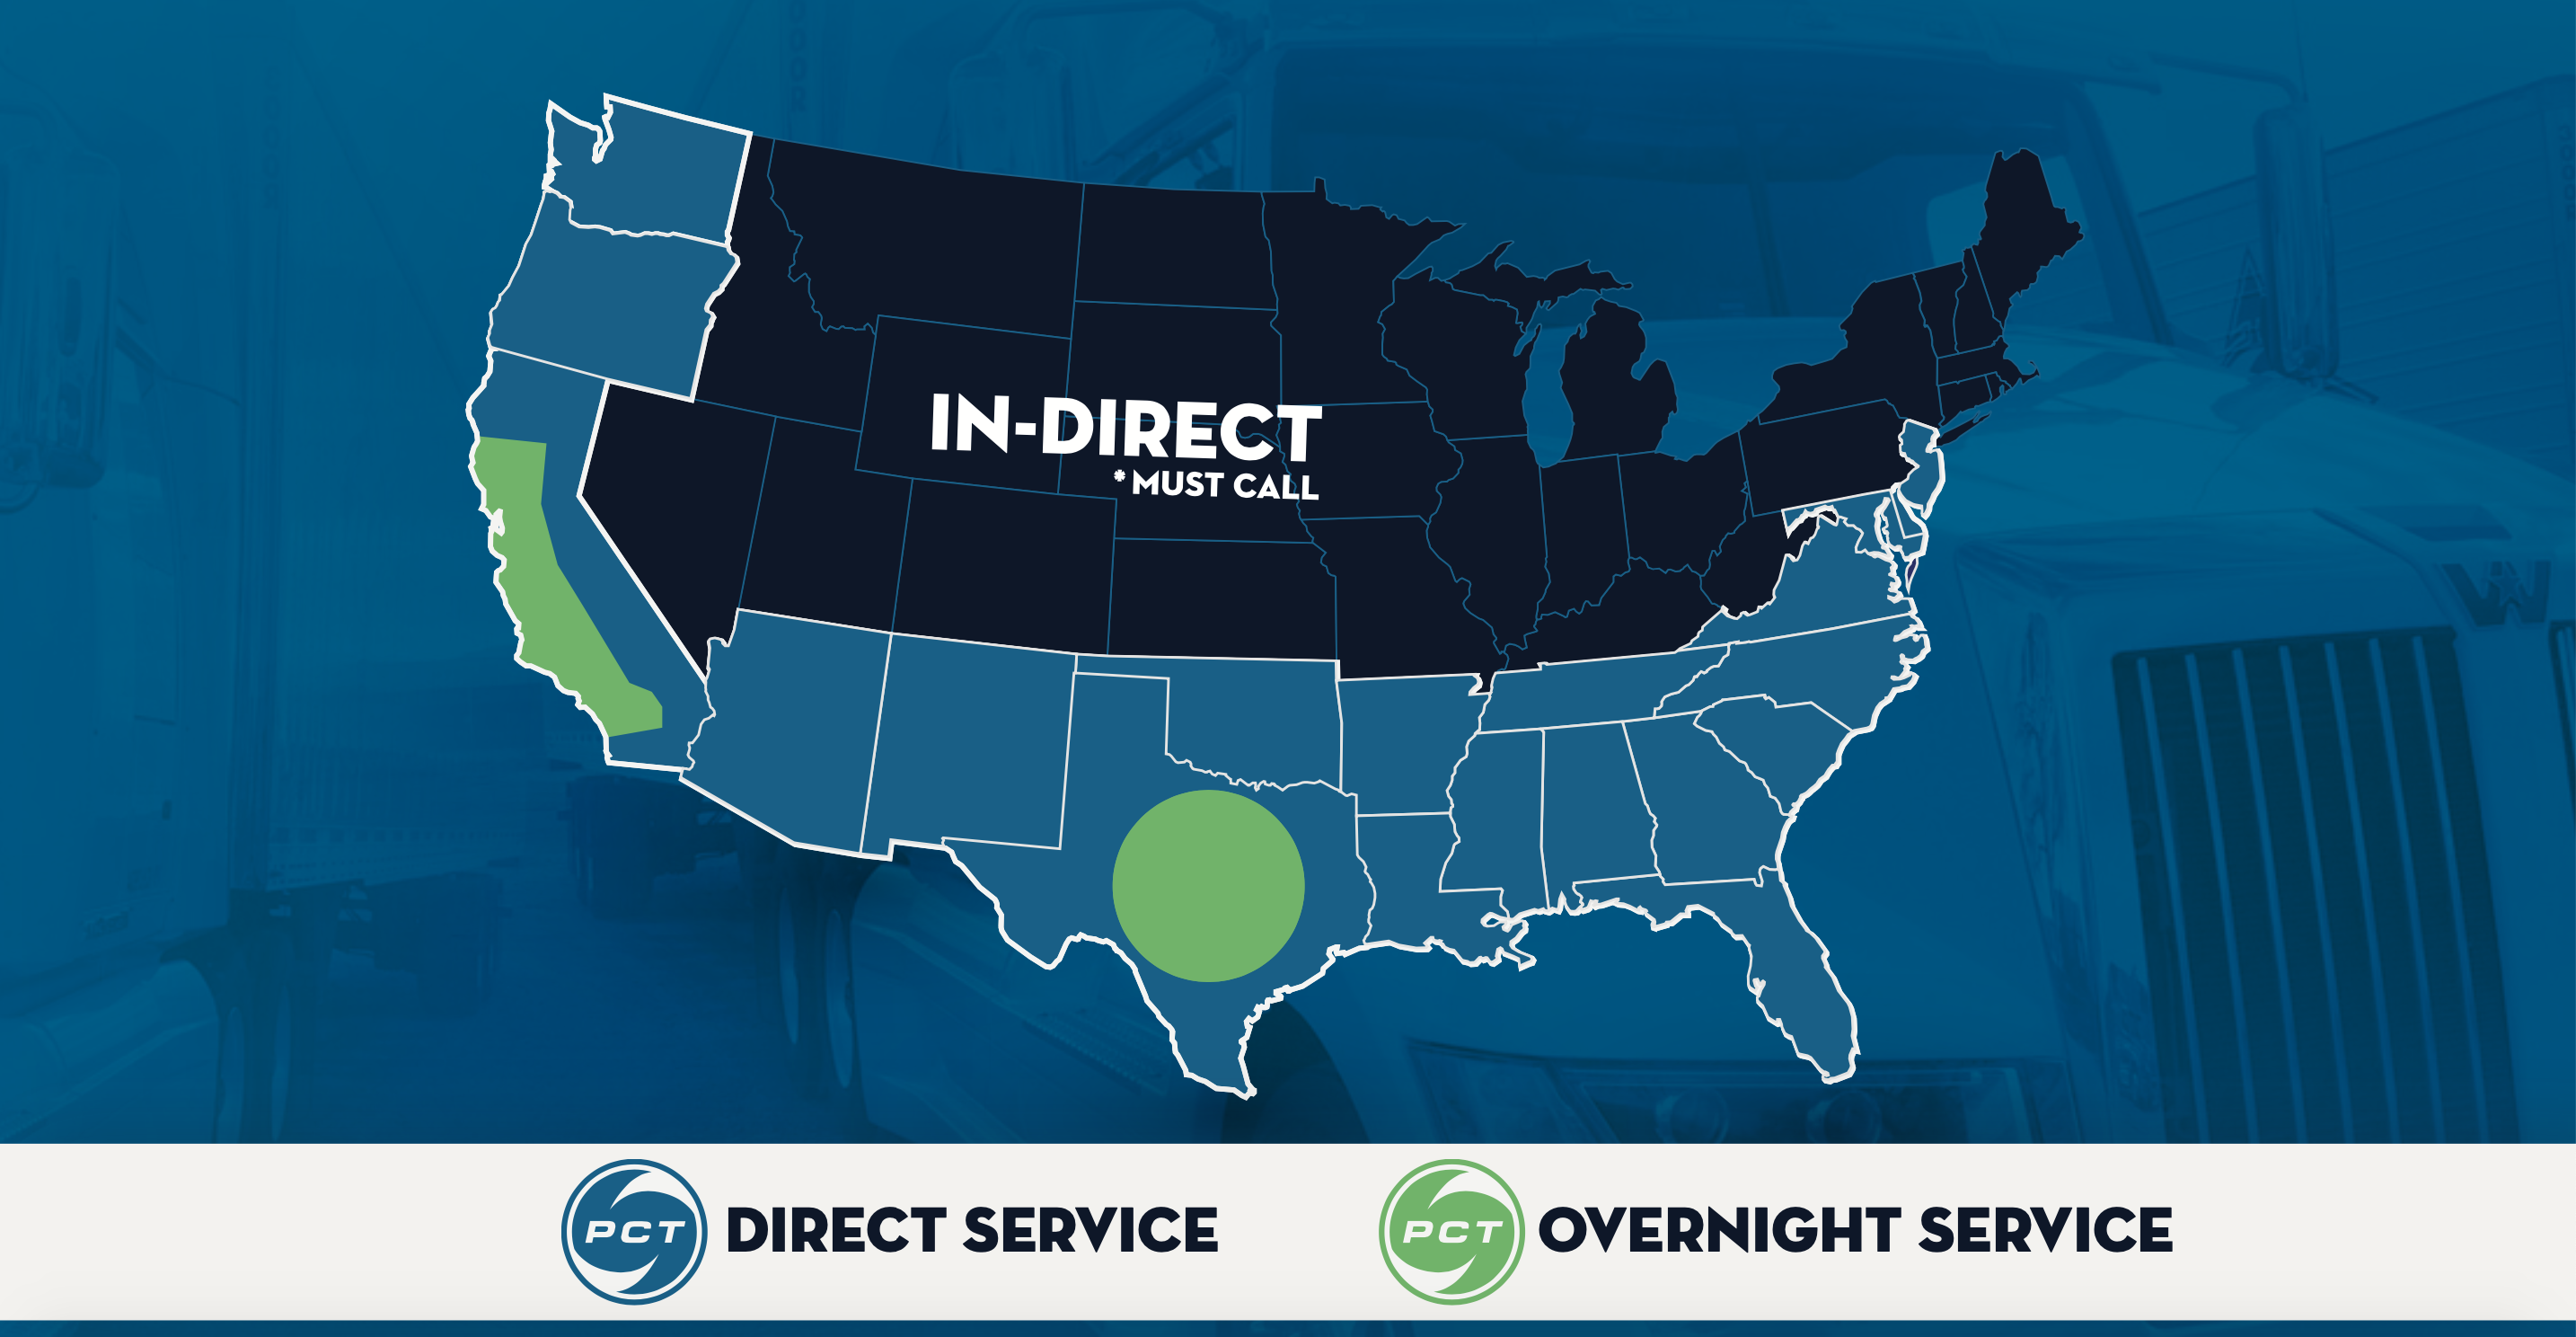 map of united states showing direct vs overnight service